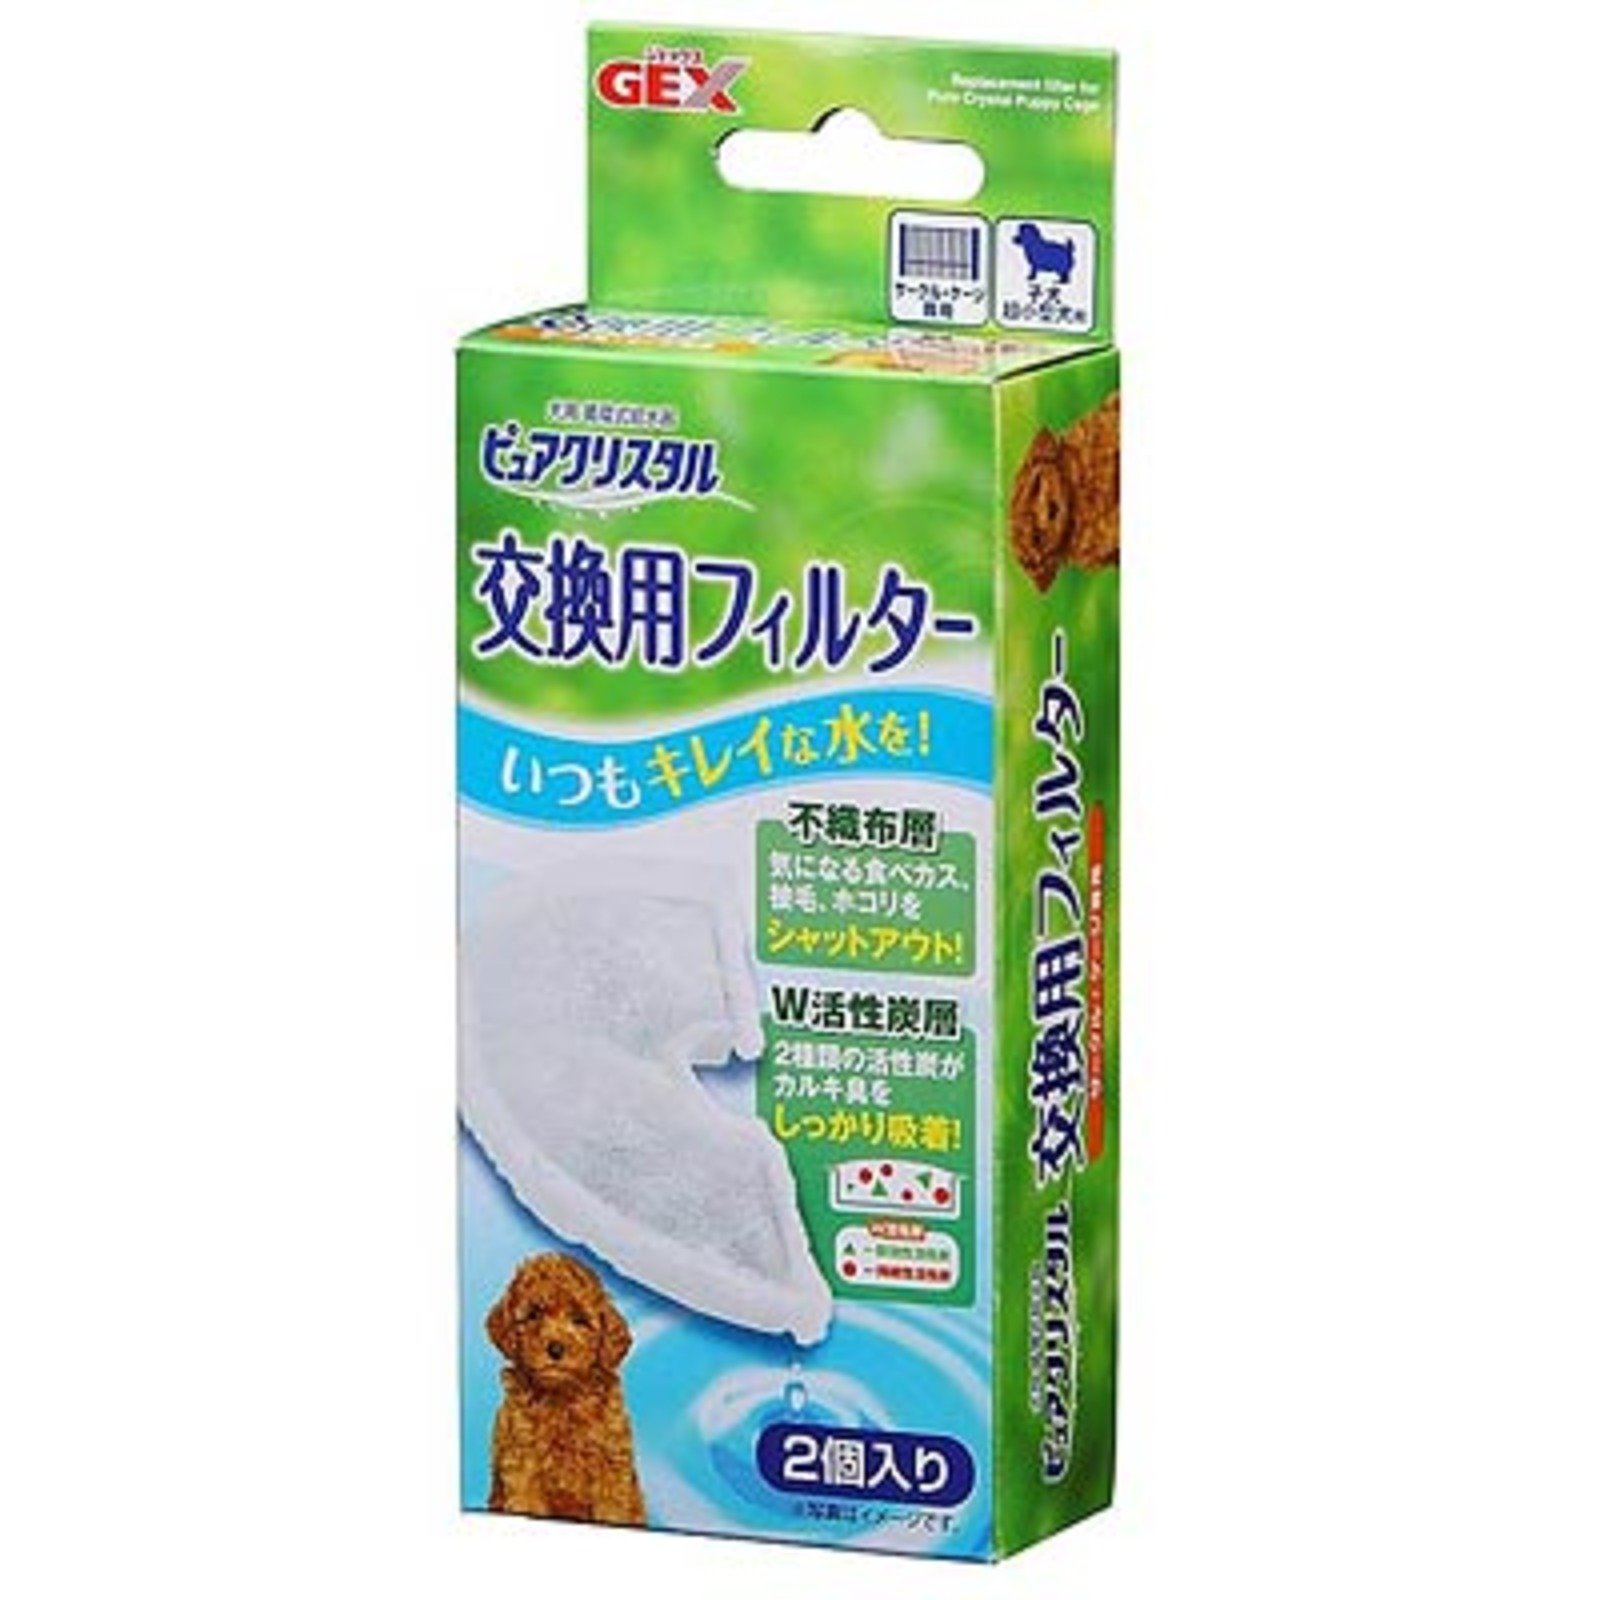 Gex Filter Cartridge for Cage PUPPY